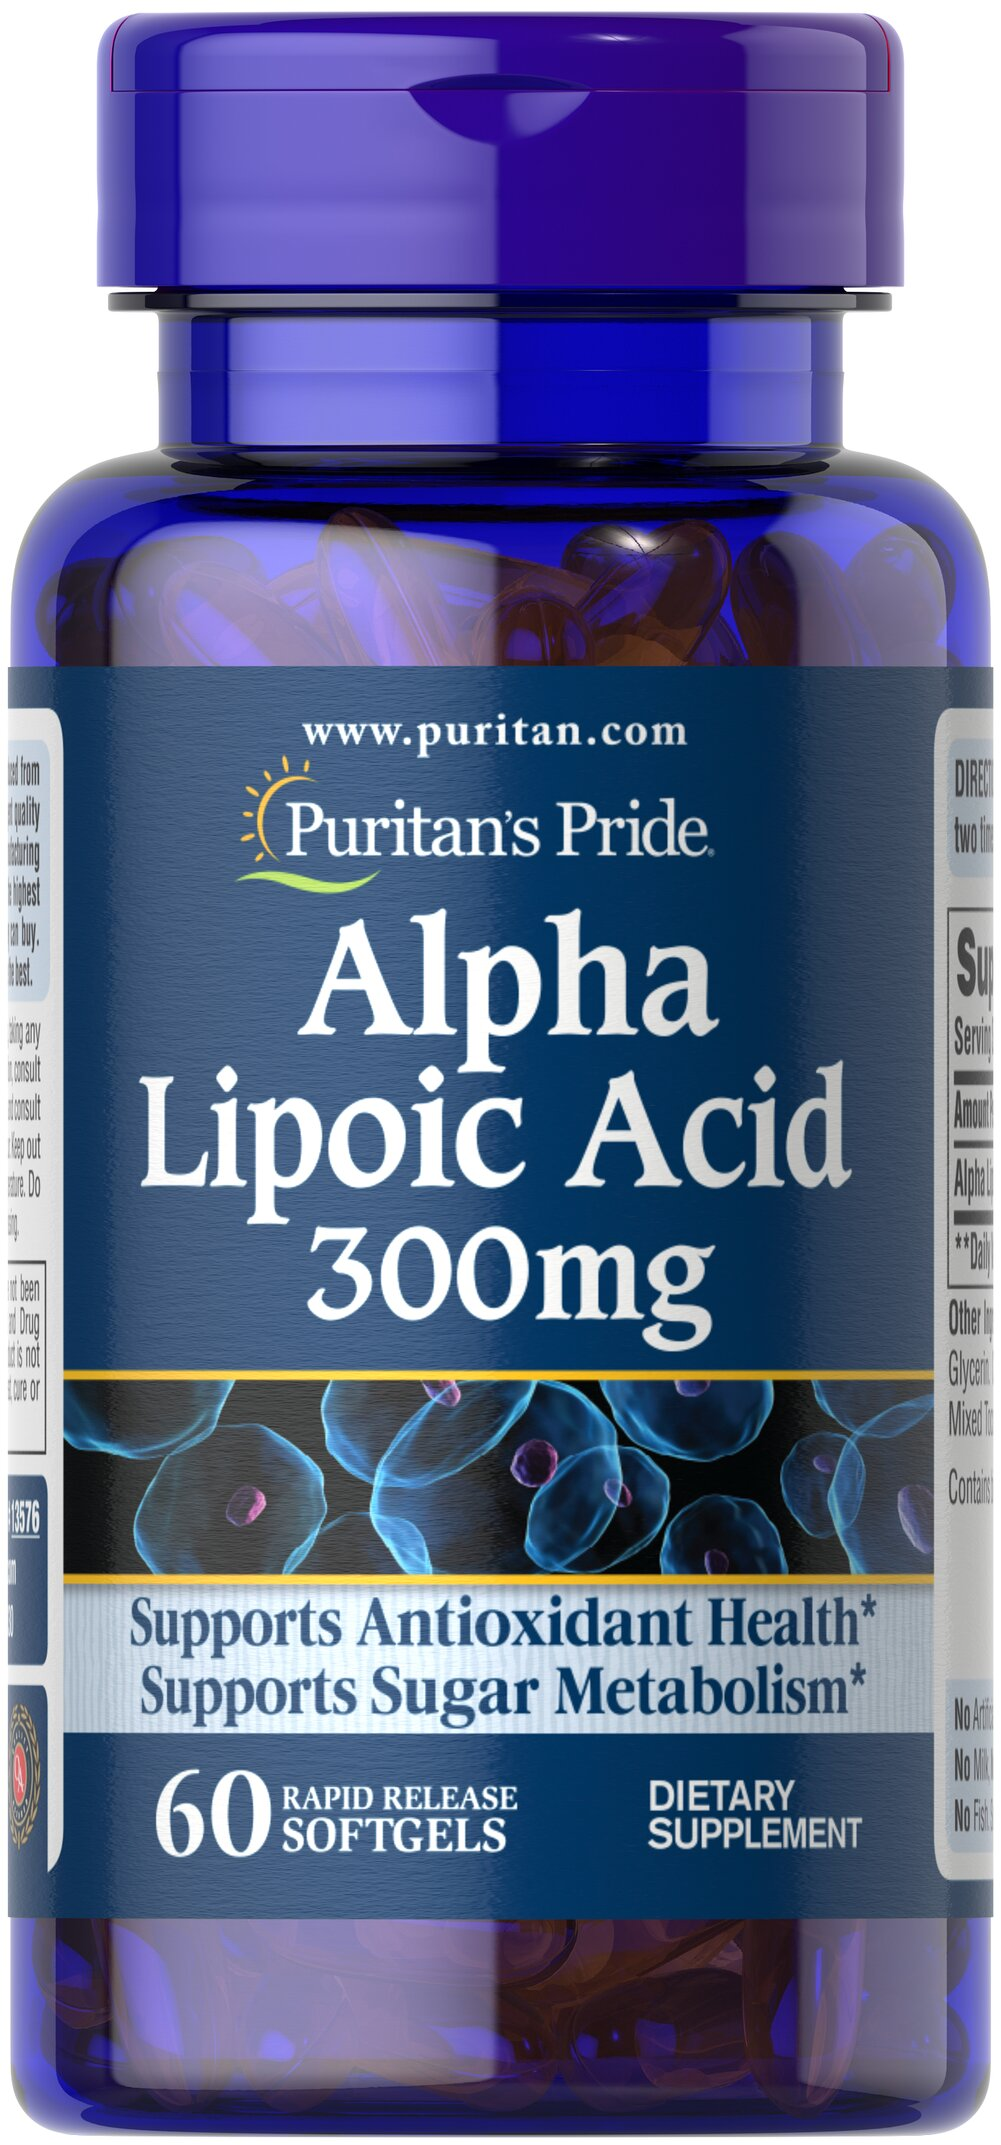 "Alpha Lipoic Acid 300 mg <p>Alpha Lipoic Acid (ALA) helps metabolize sugar, especially in muscles, where it promotes energy.**</p><p>ALA is also beneficial for liver health, and helps to revitalize the underlying structure of the skin so it can look healthier and more radiant.**</p><p>ALA is often called the ""universal antioxidant"" for its ability to help neutralize cell-damaging free radicals.** </p> 60 Softgels 300 mg $14.99"